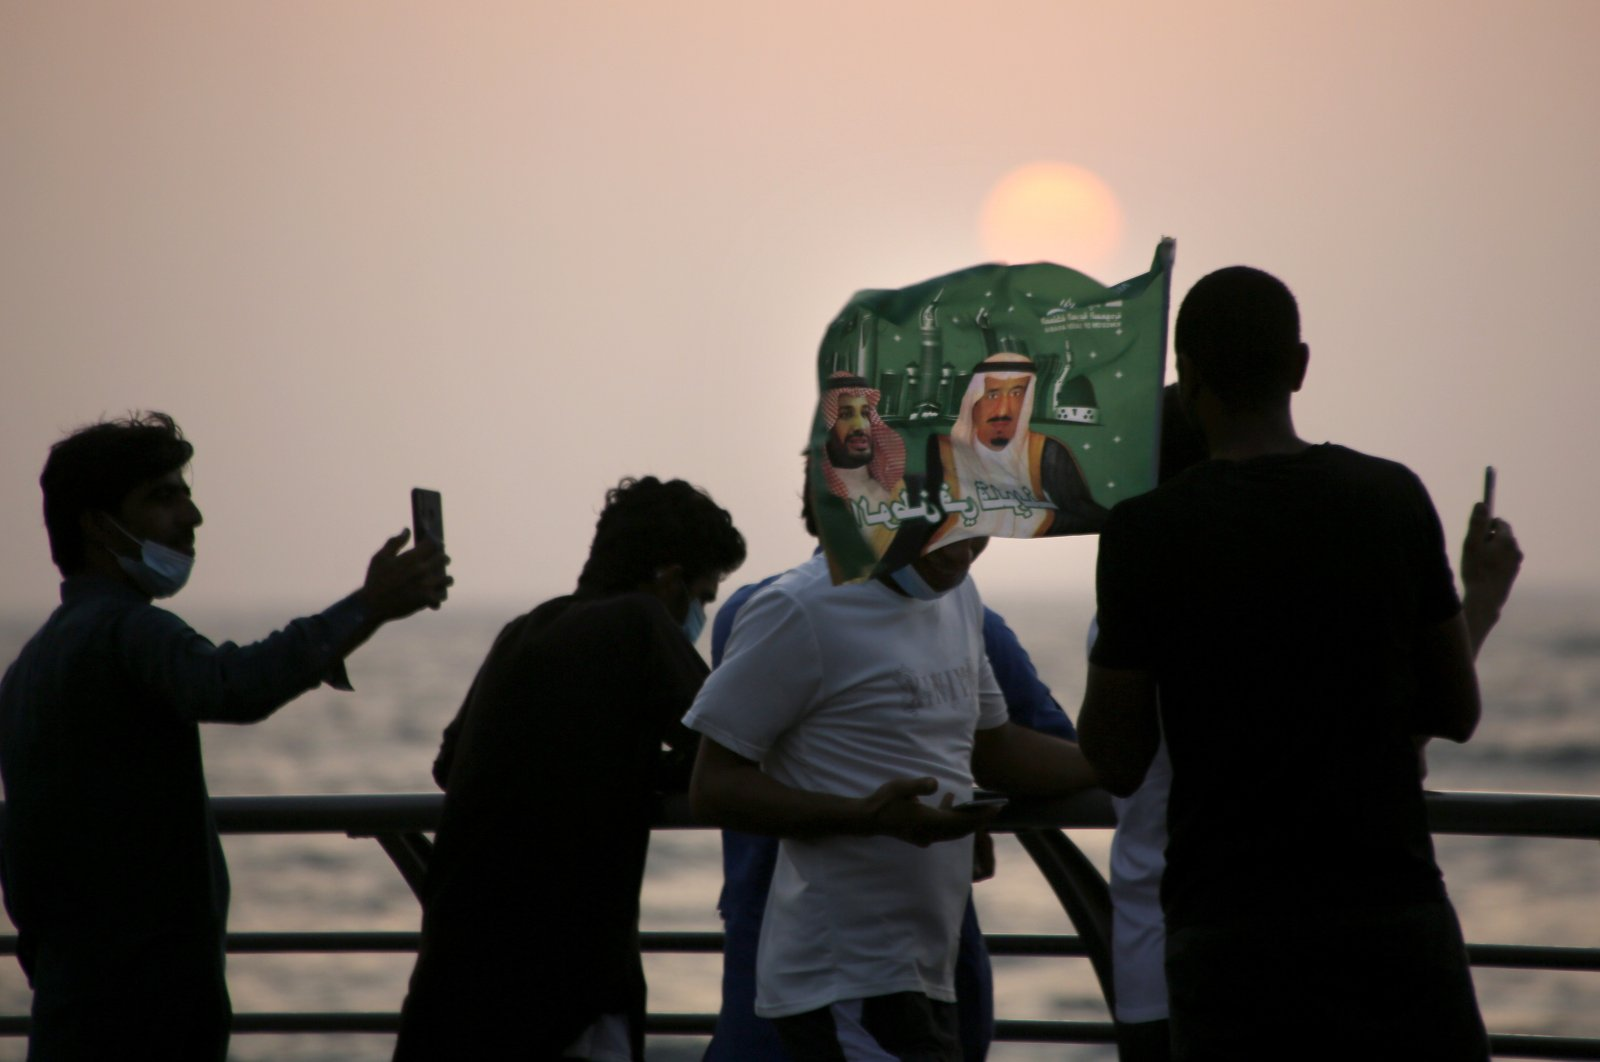 Saudis watch the sunset as they wave a flag with pictures of Saudi King Salman (R) and Crown Prince Mohammed bin Salman (L) during a celebration marking National Day to commemorate the unification of the country as the Kingdom of Saudi Arabia, in Jiddah, Saudi Arabia, Sept. 23, 2020. (AP Photo)